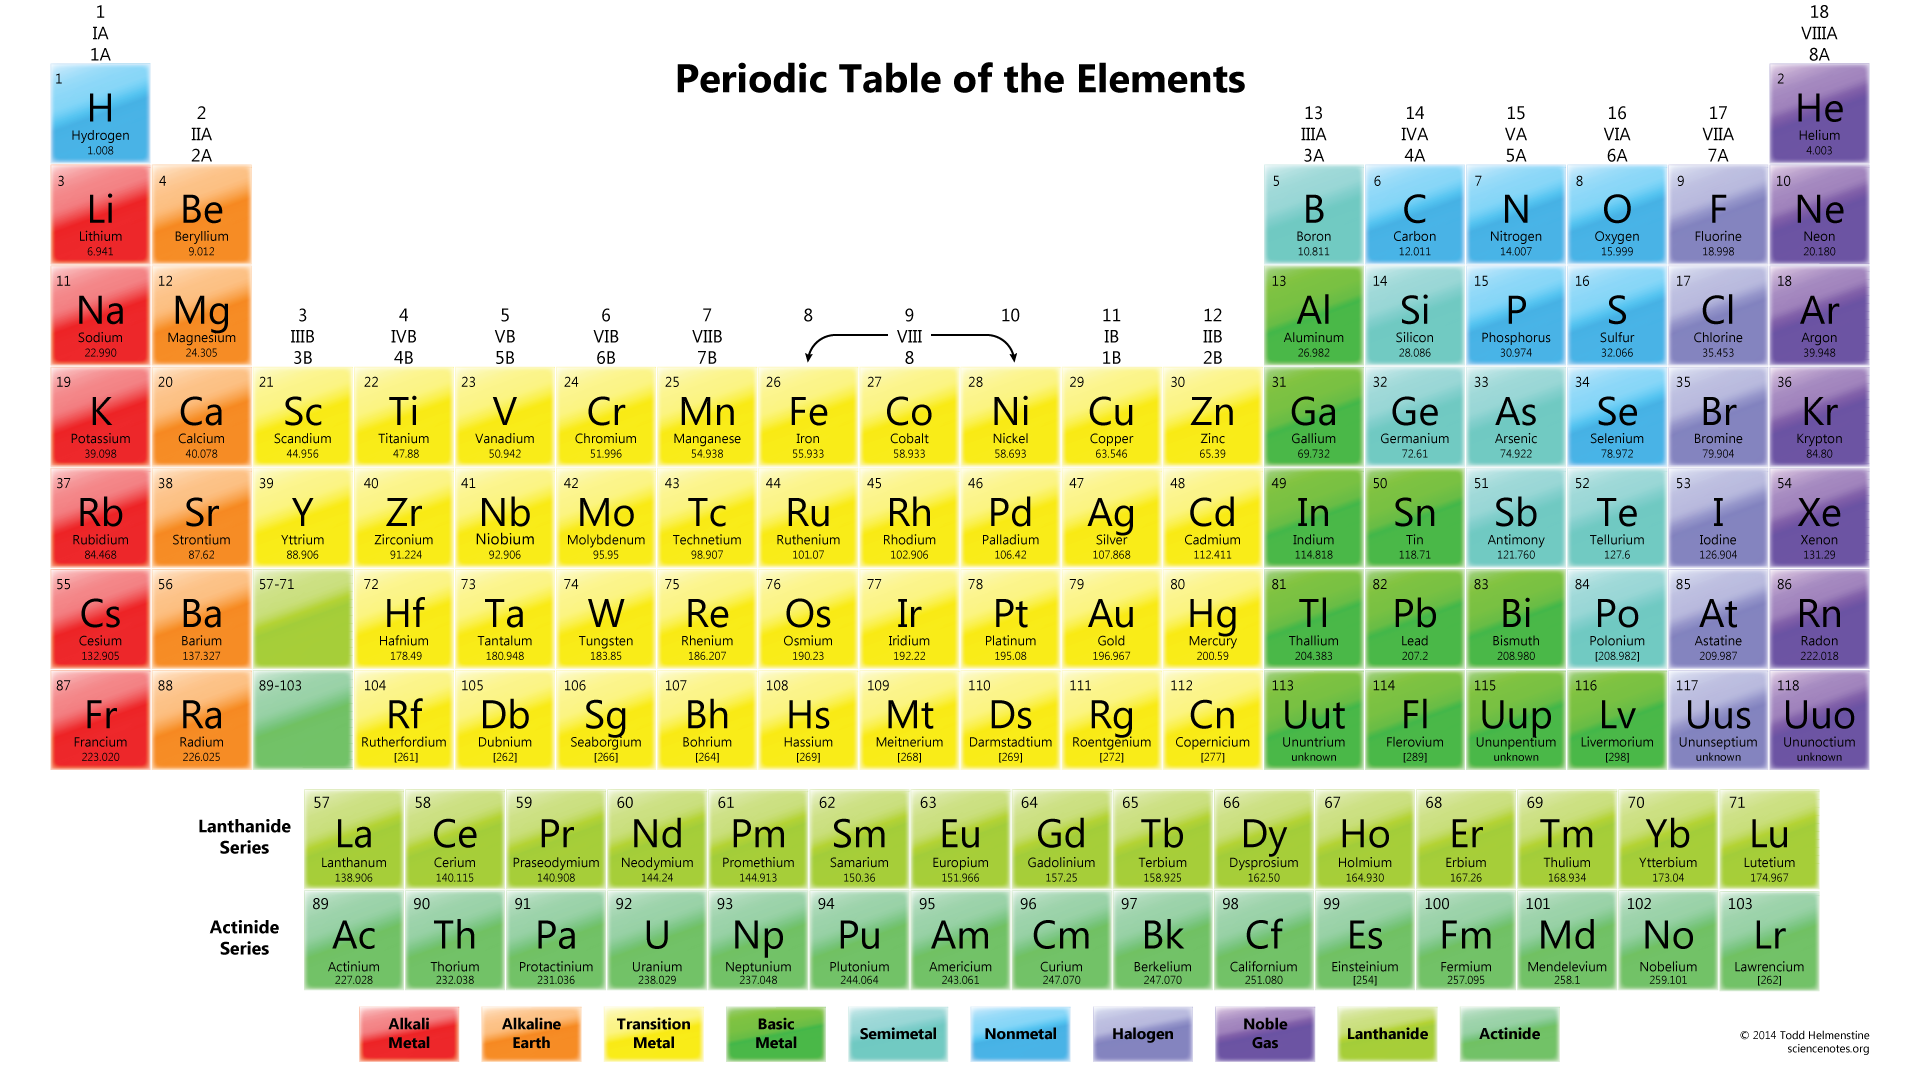 Usefulness of the periodic table in studying the chemistry of usefulness of the periodic table in studying the chemistry of elements gamestrikefo Gallery